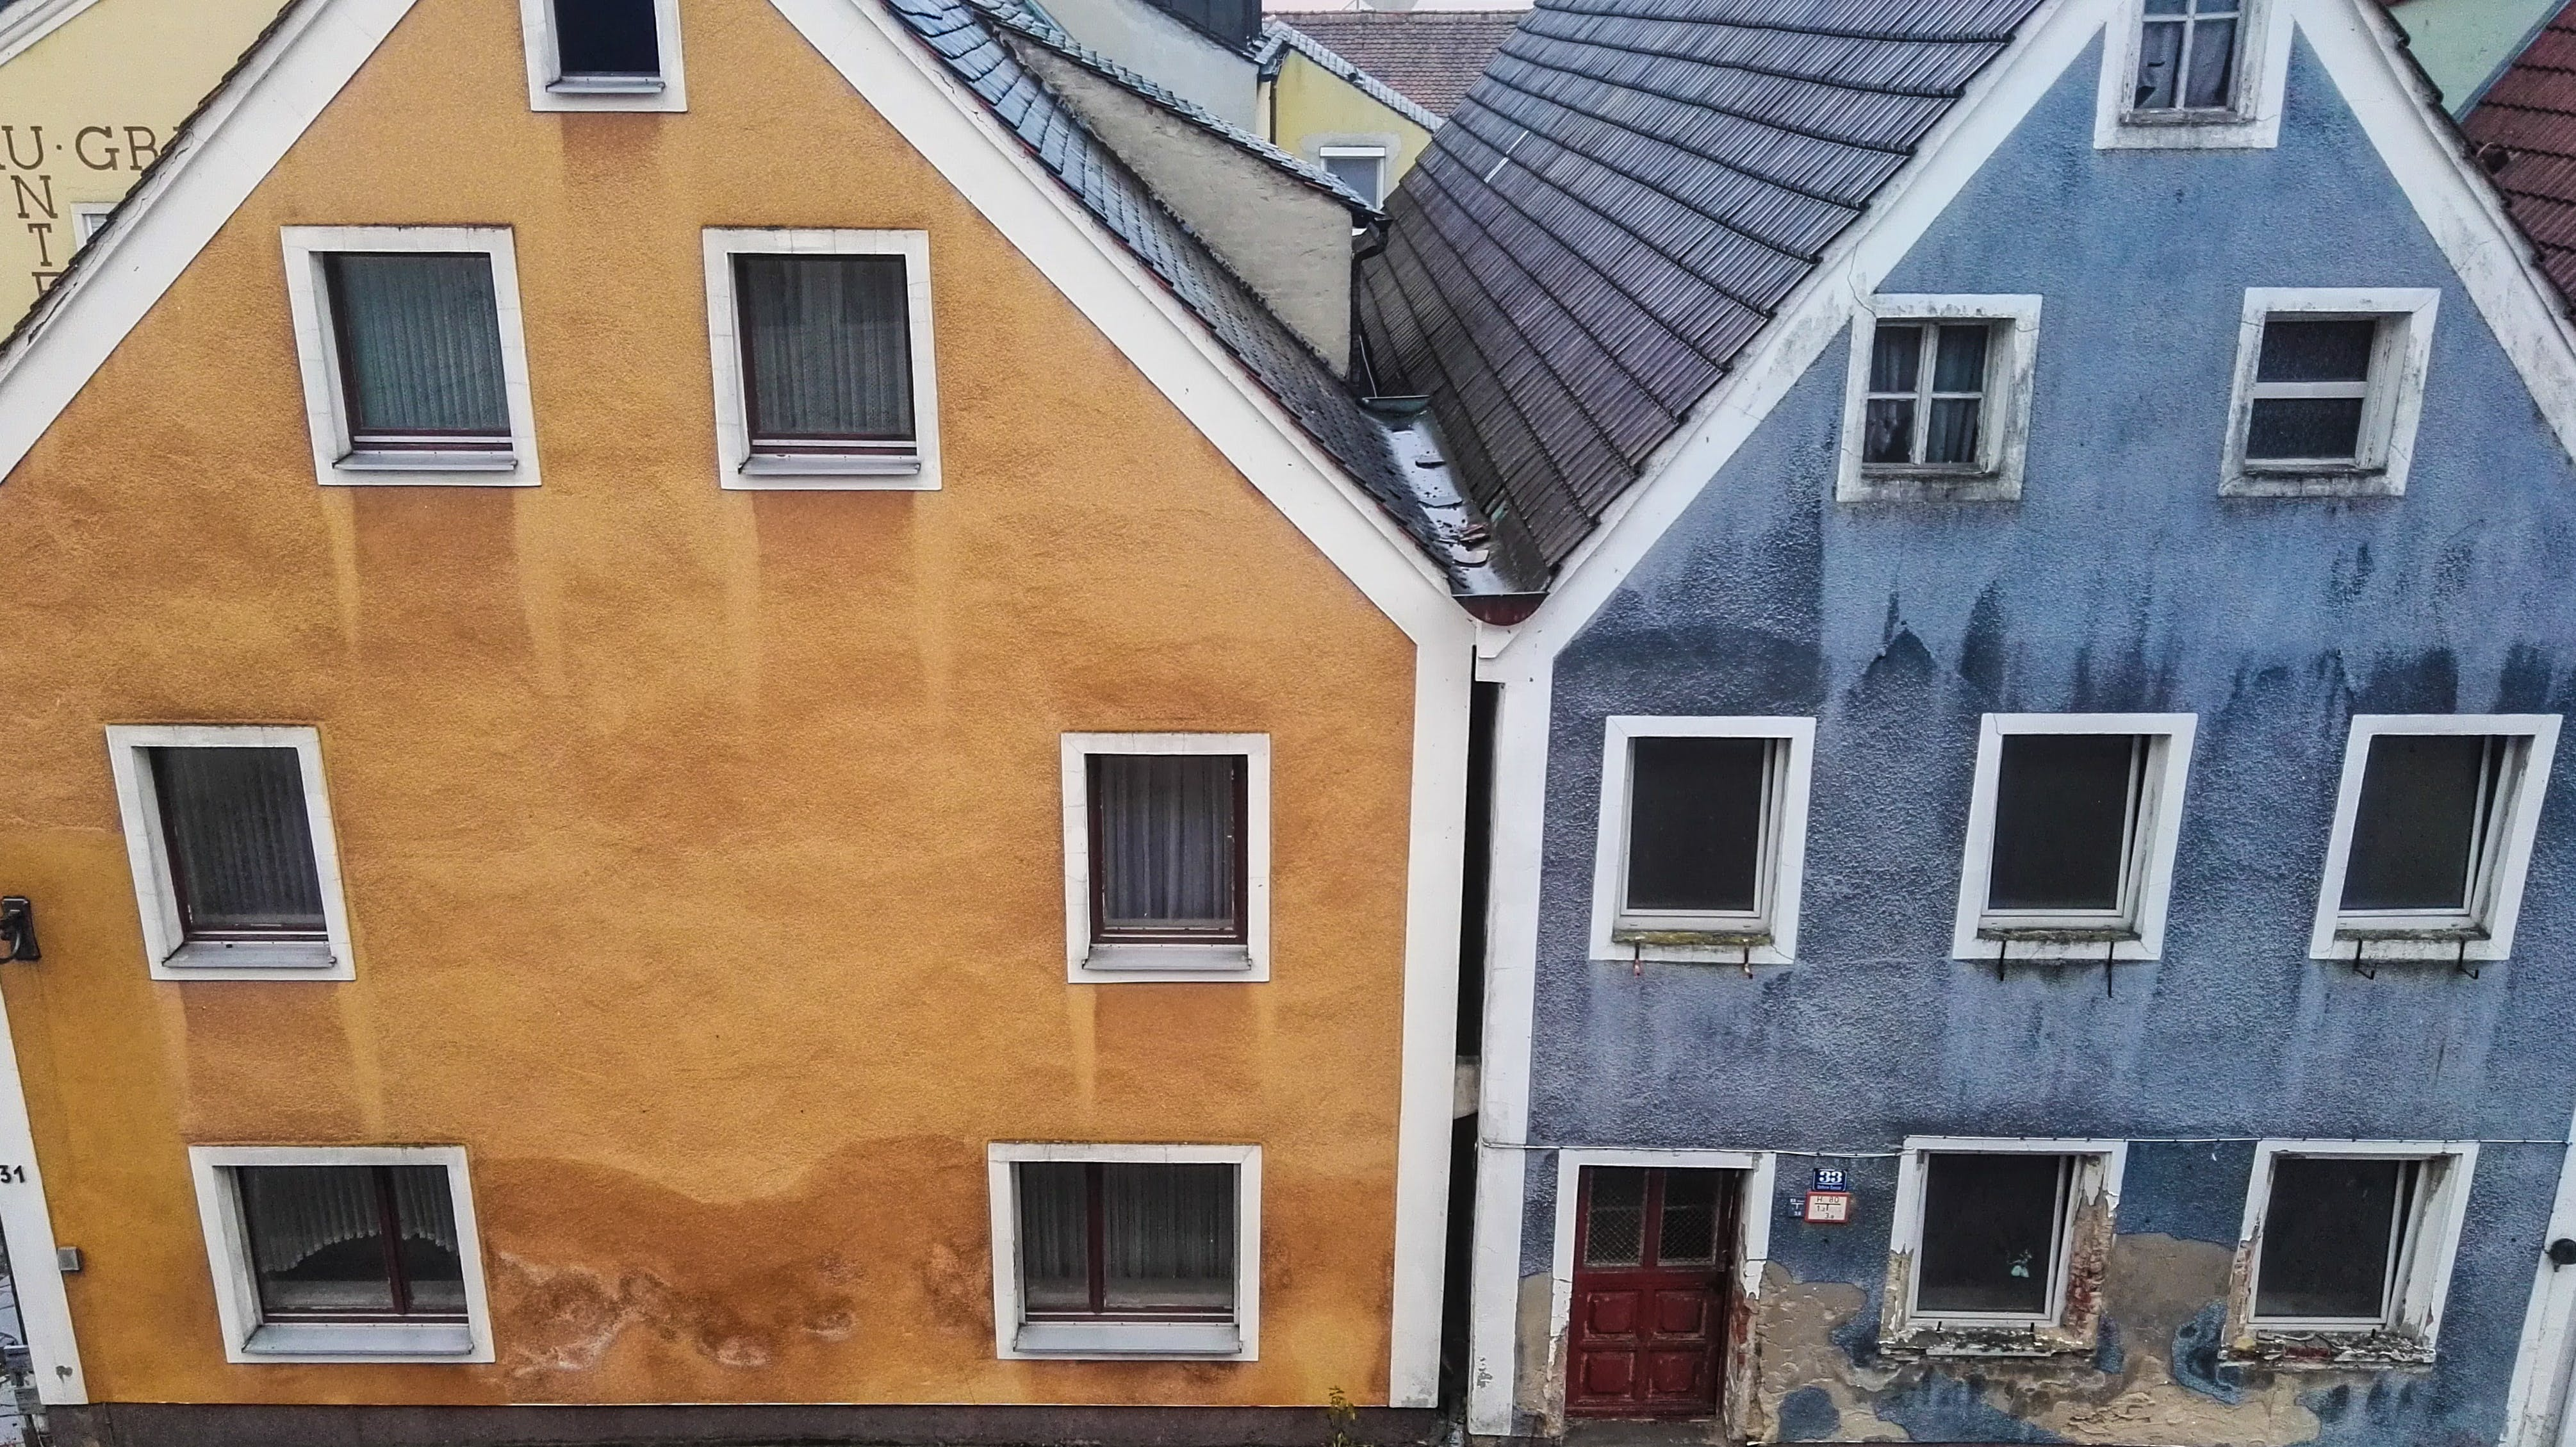 Free stock photo of buildings, colorful, homes, old